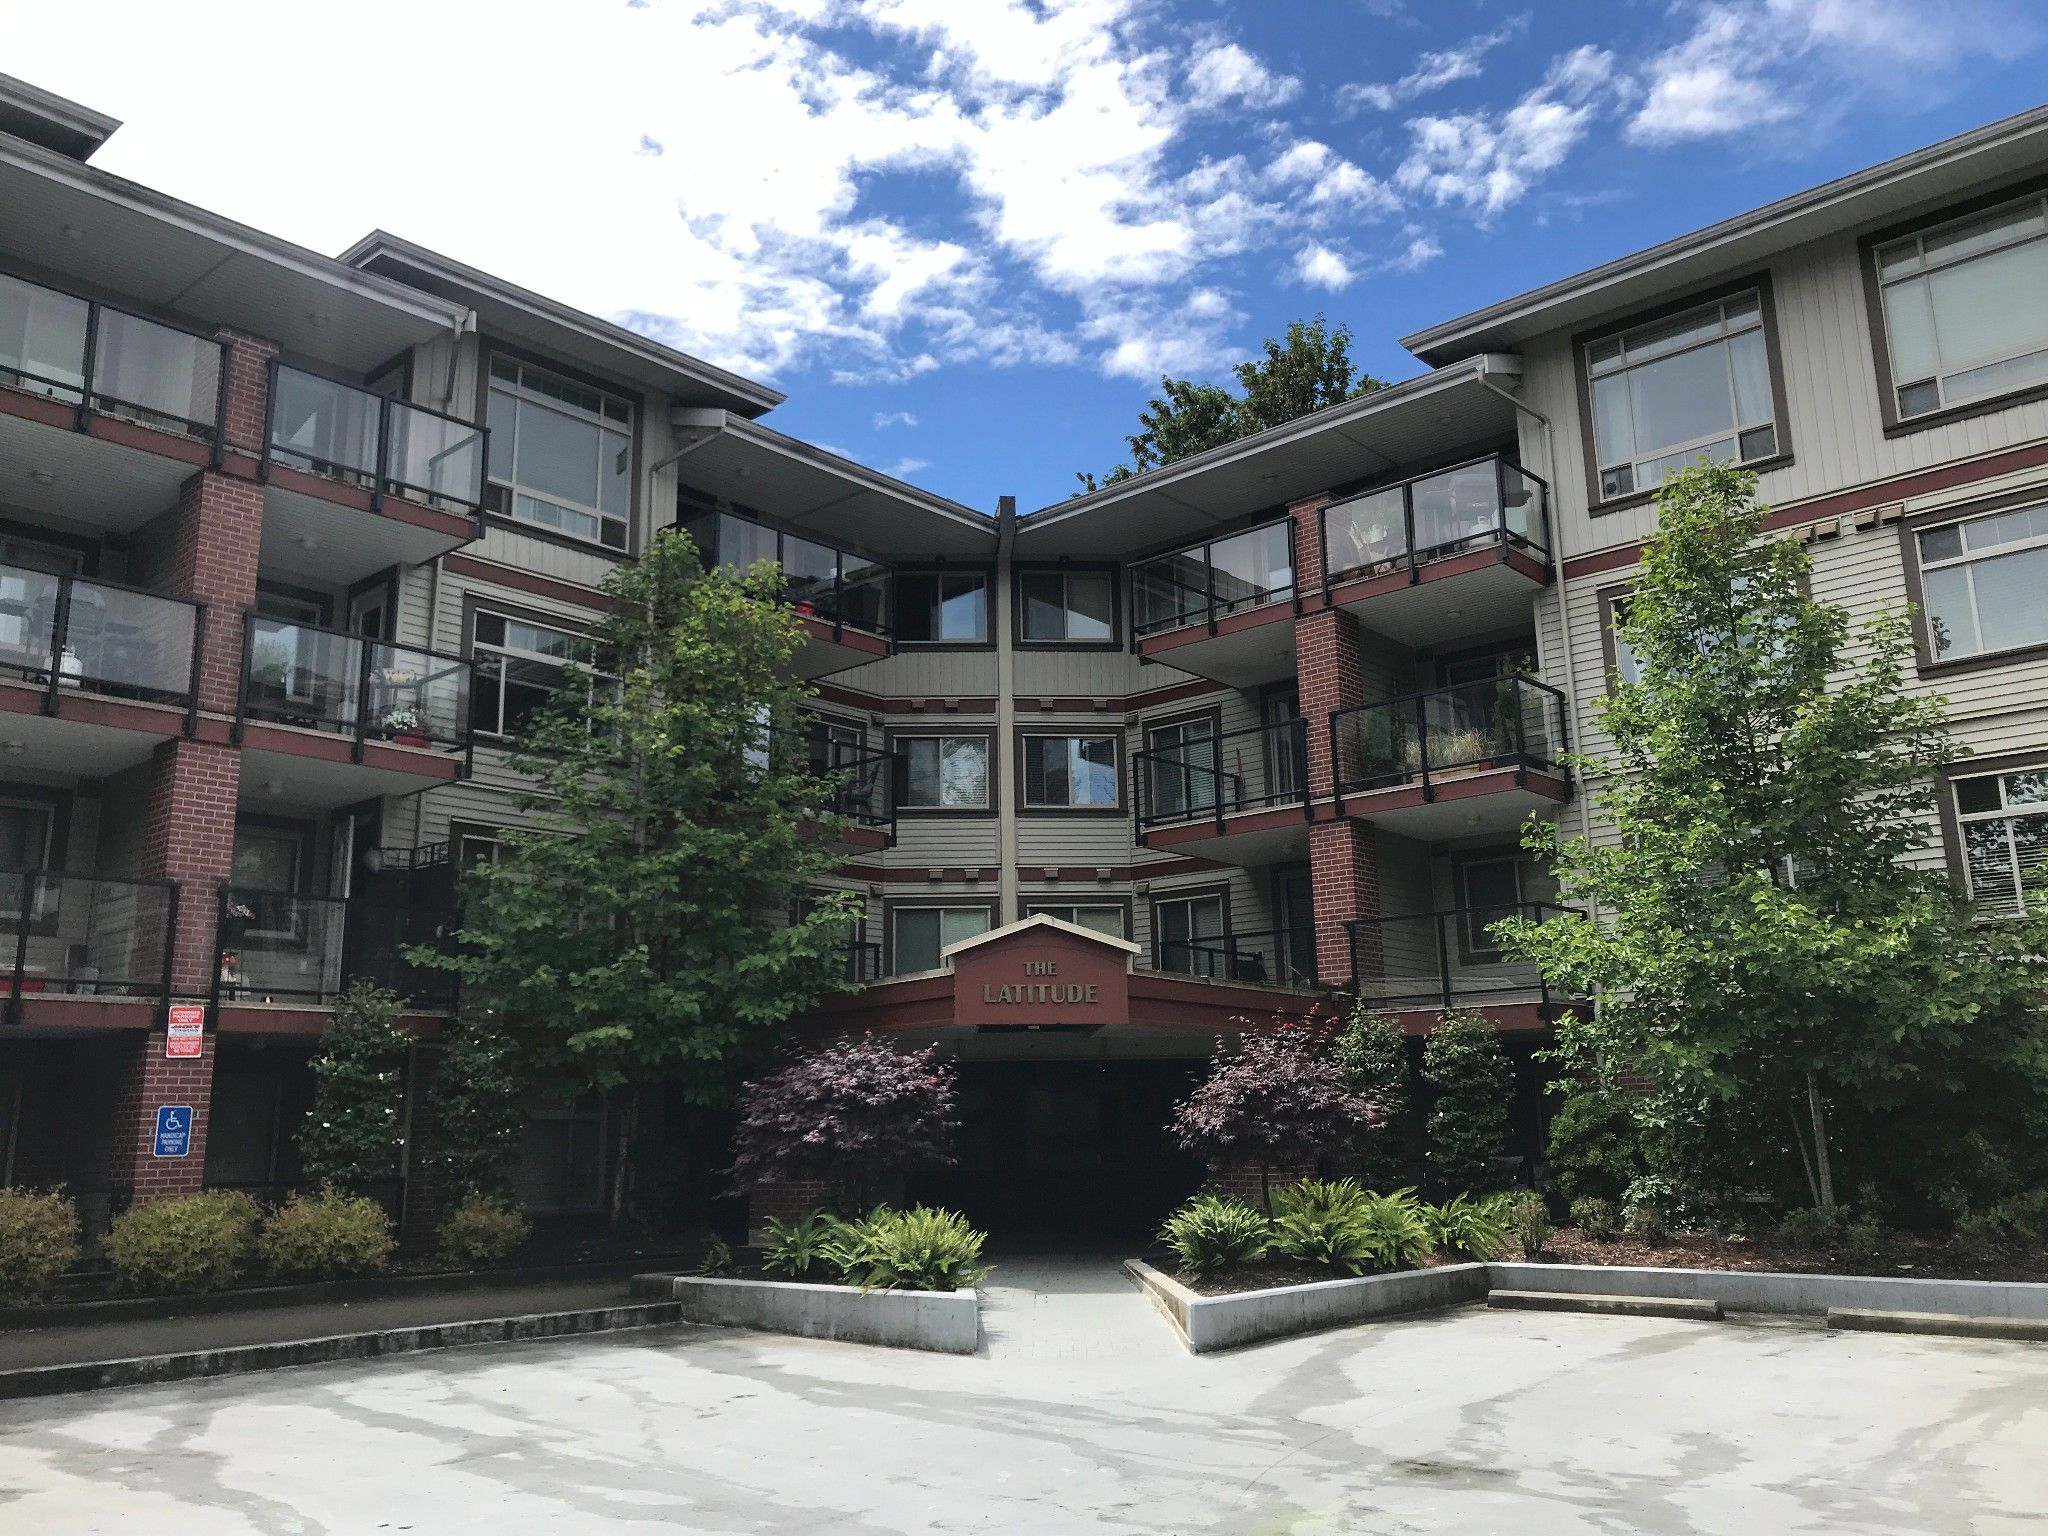 Main Photo: #232 2233 McKenzie Rd. in Abbotsford: Central Abbotsford Condo for rent